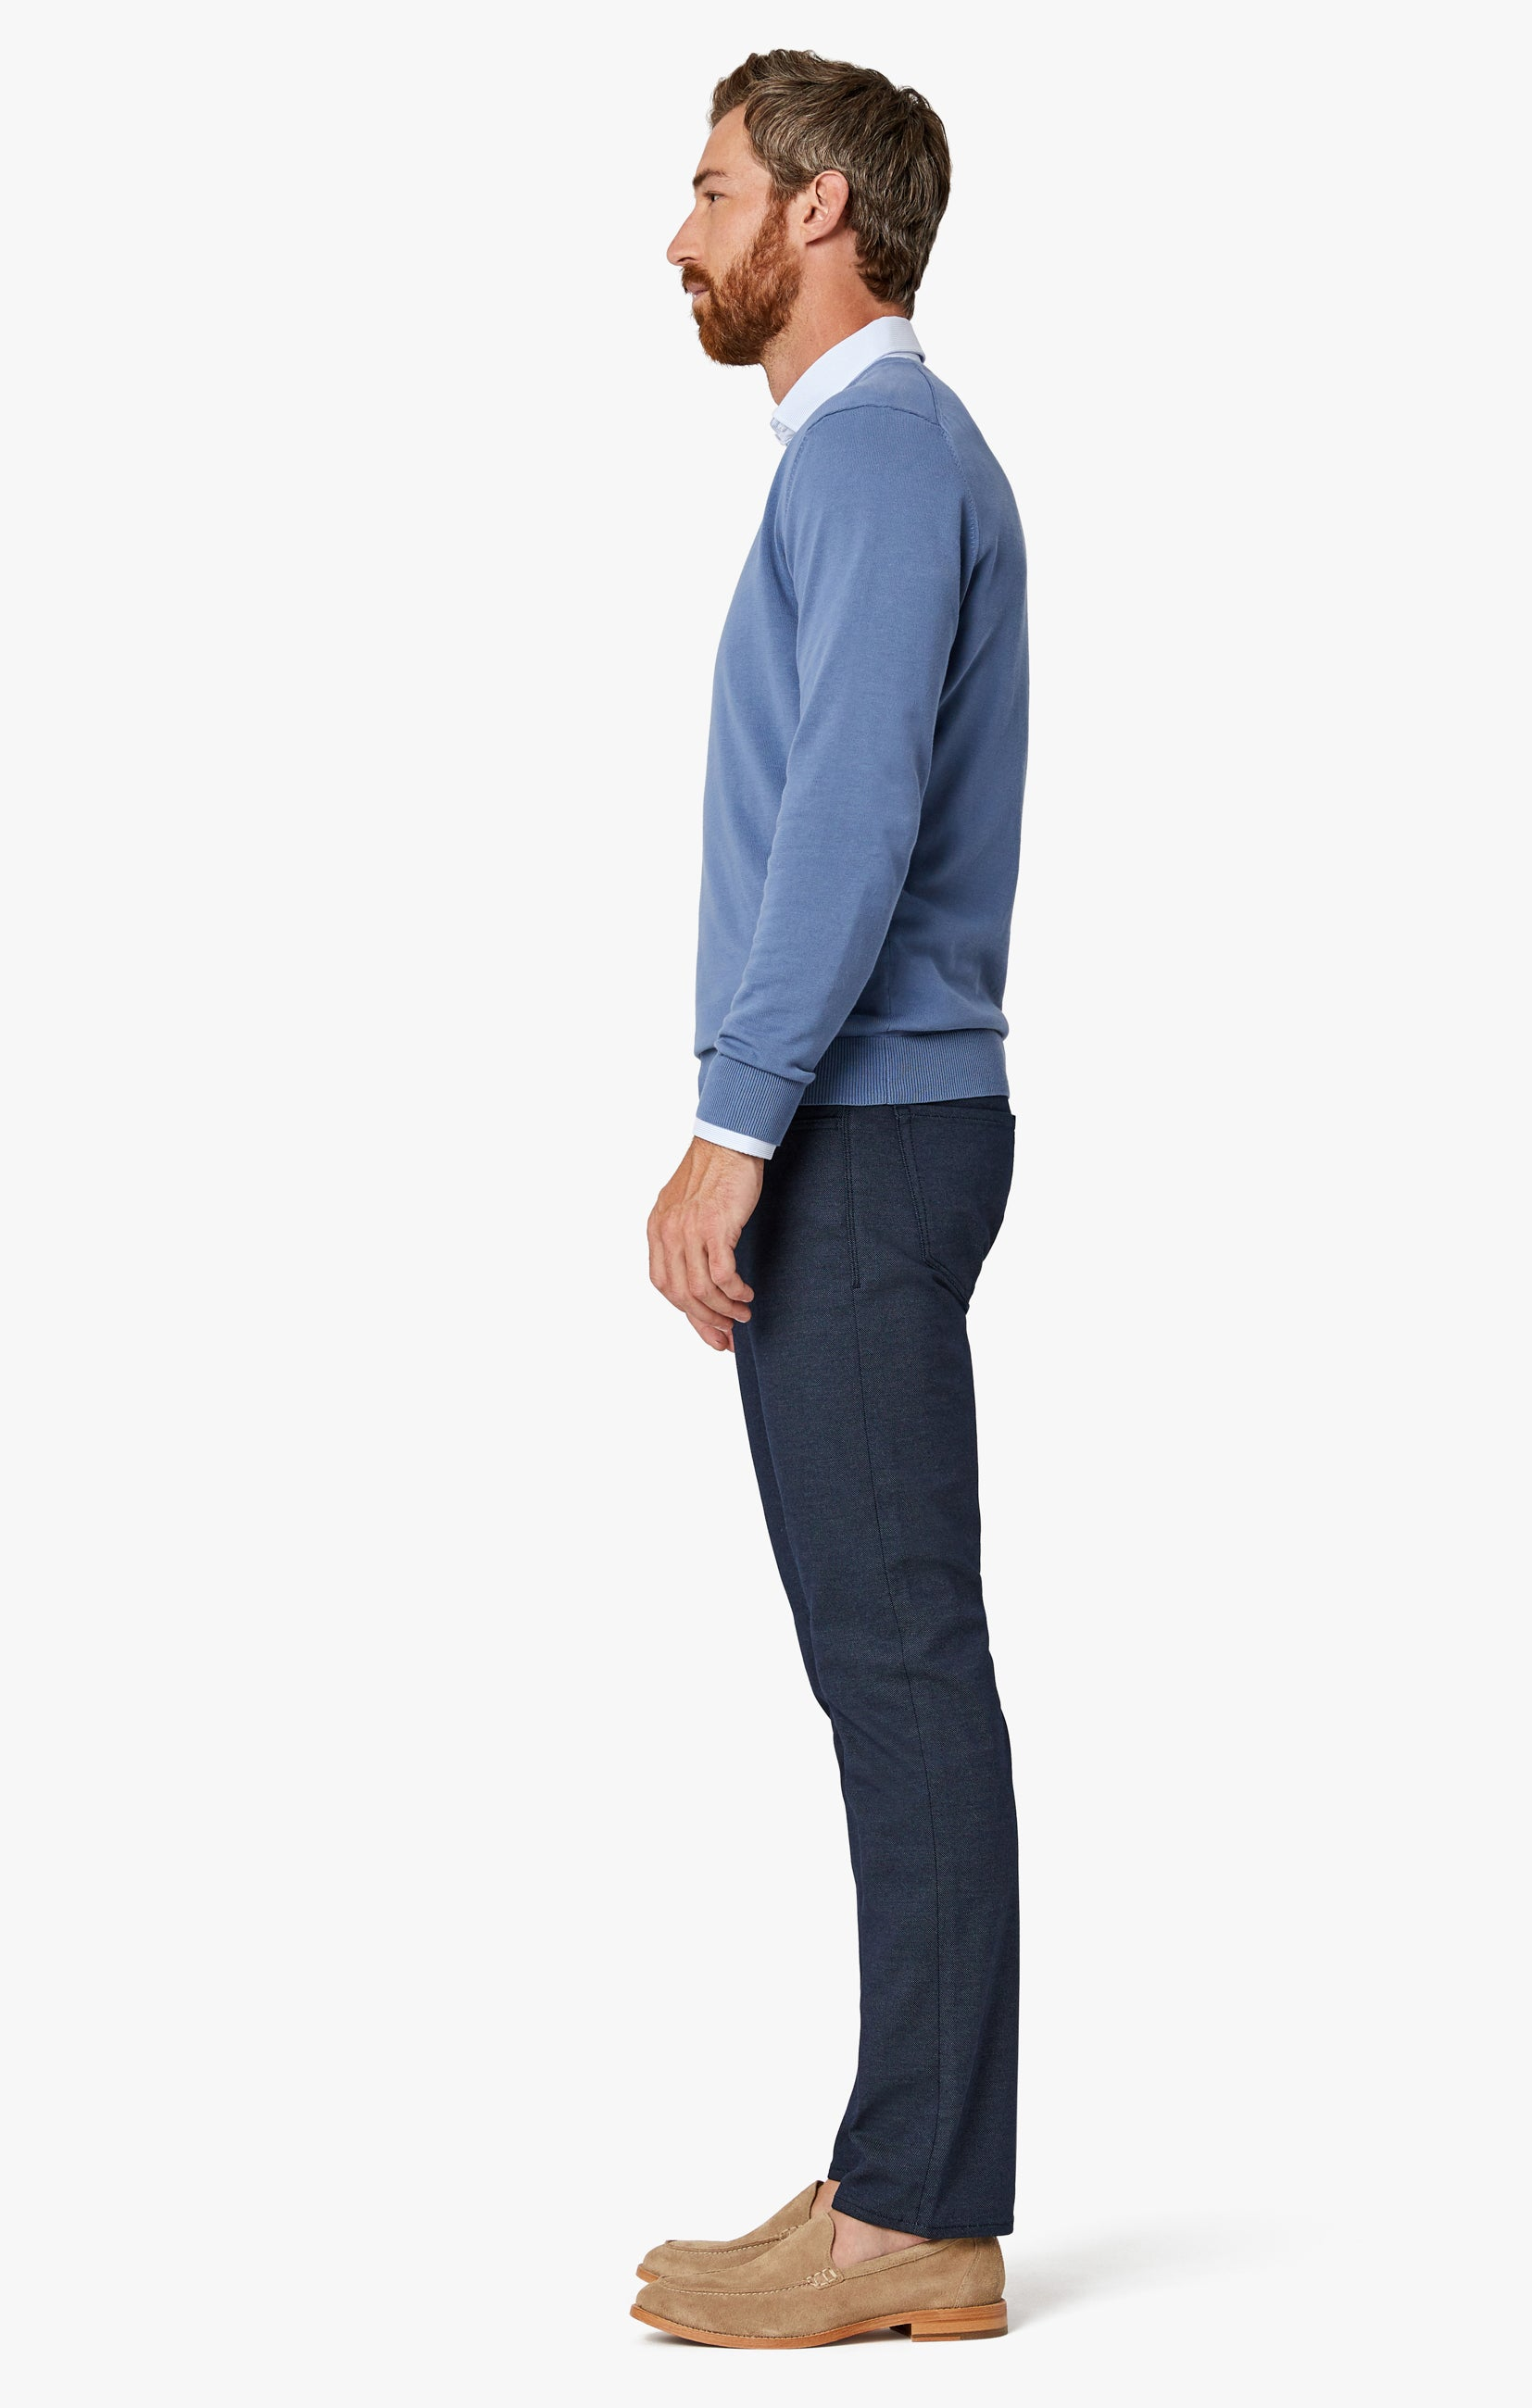 Courage Straight Leg Pants in Navy Coolmax Image 6